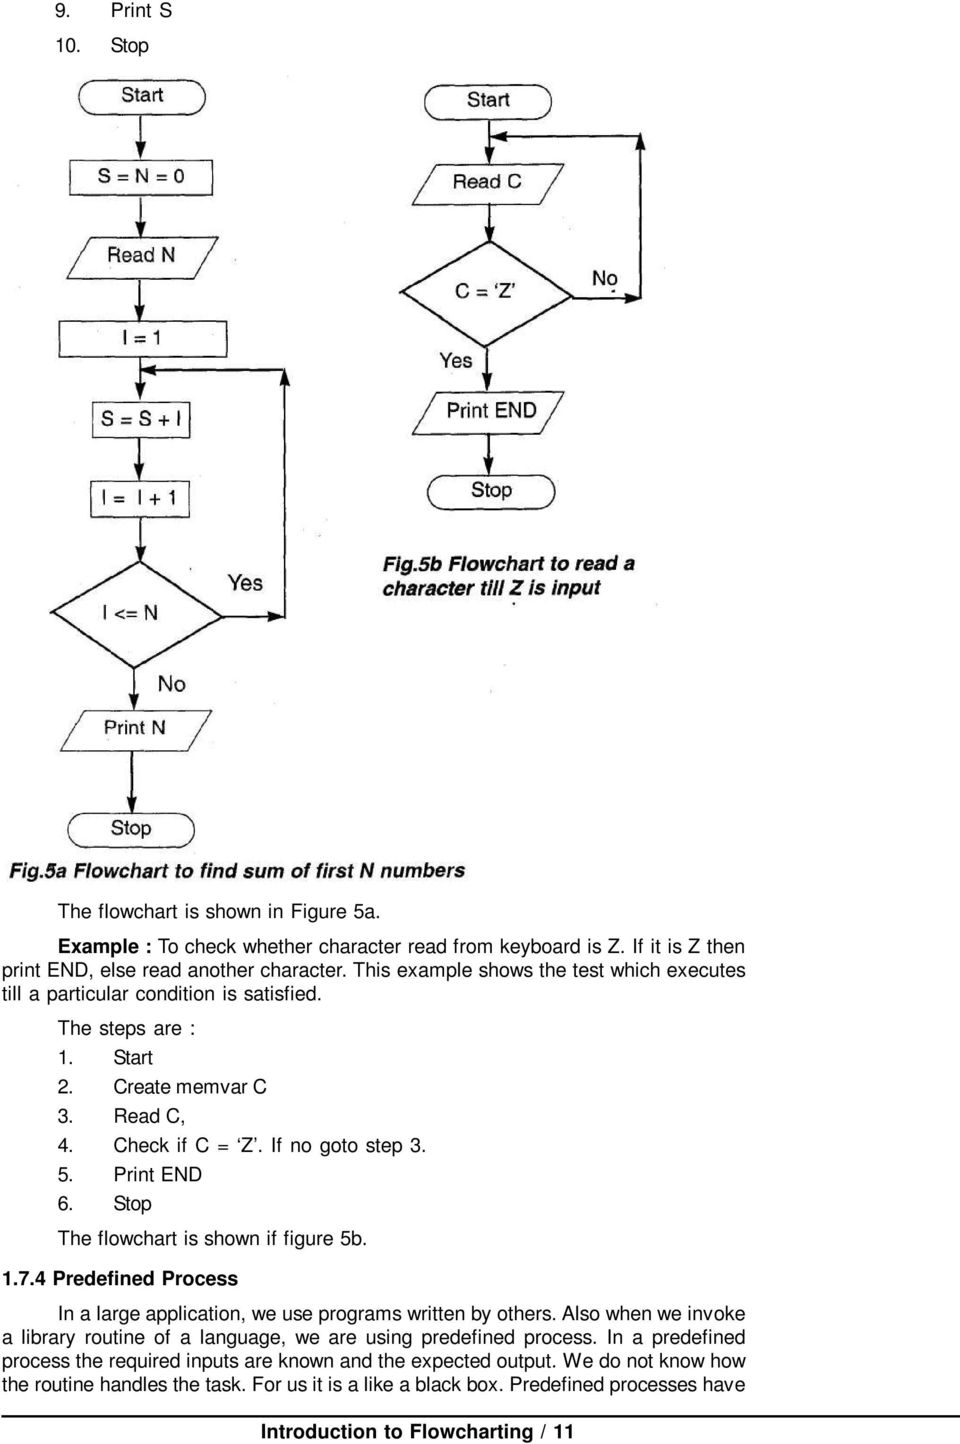 Stop The flowchart is shown if figure 5b. 1.7.4 Predefined Process In a large application, we use programs written by others.